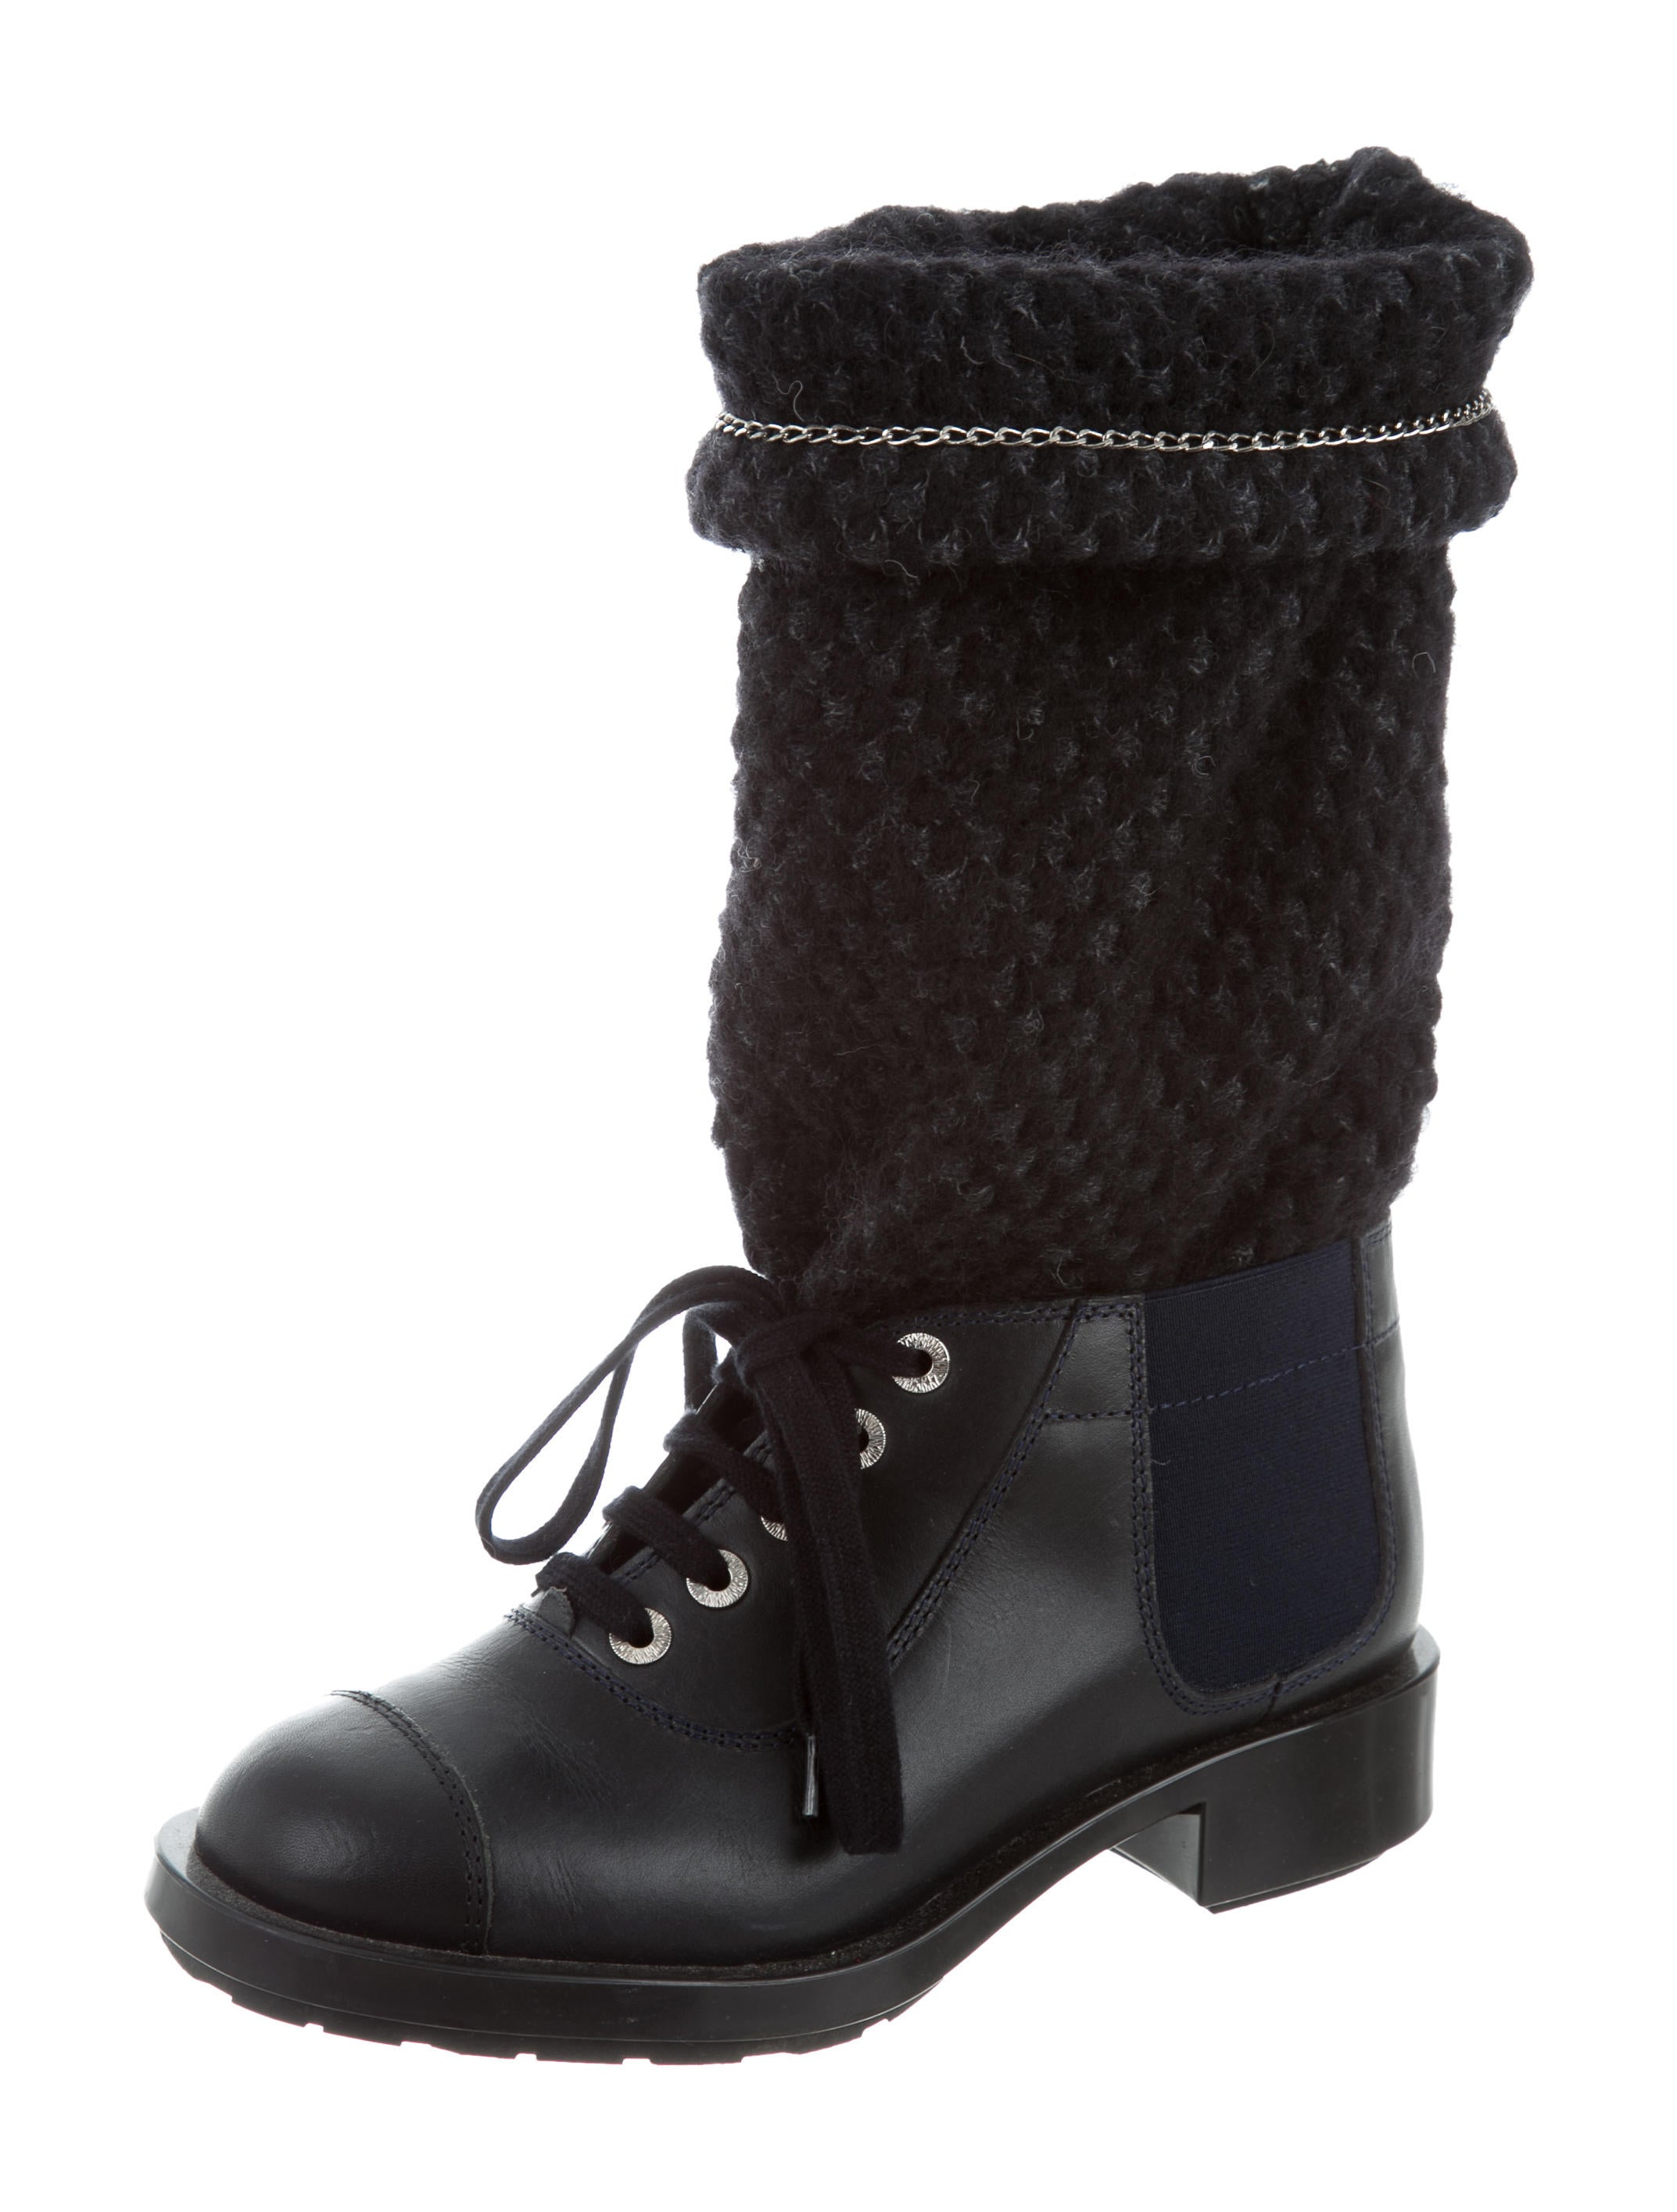 chanel leather lace up ankle boots shoes cha183865